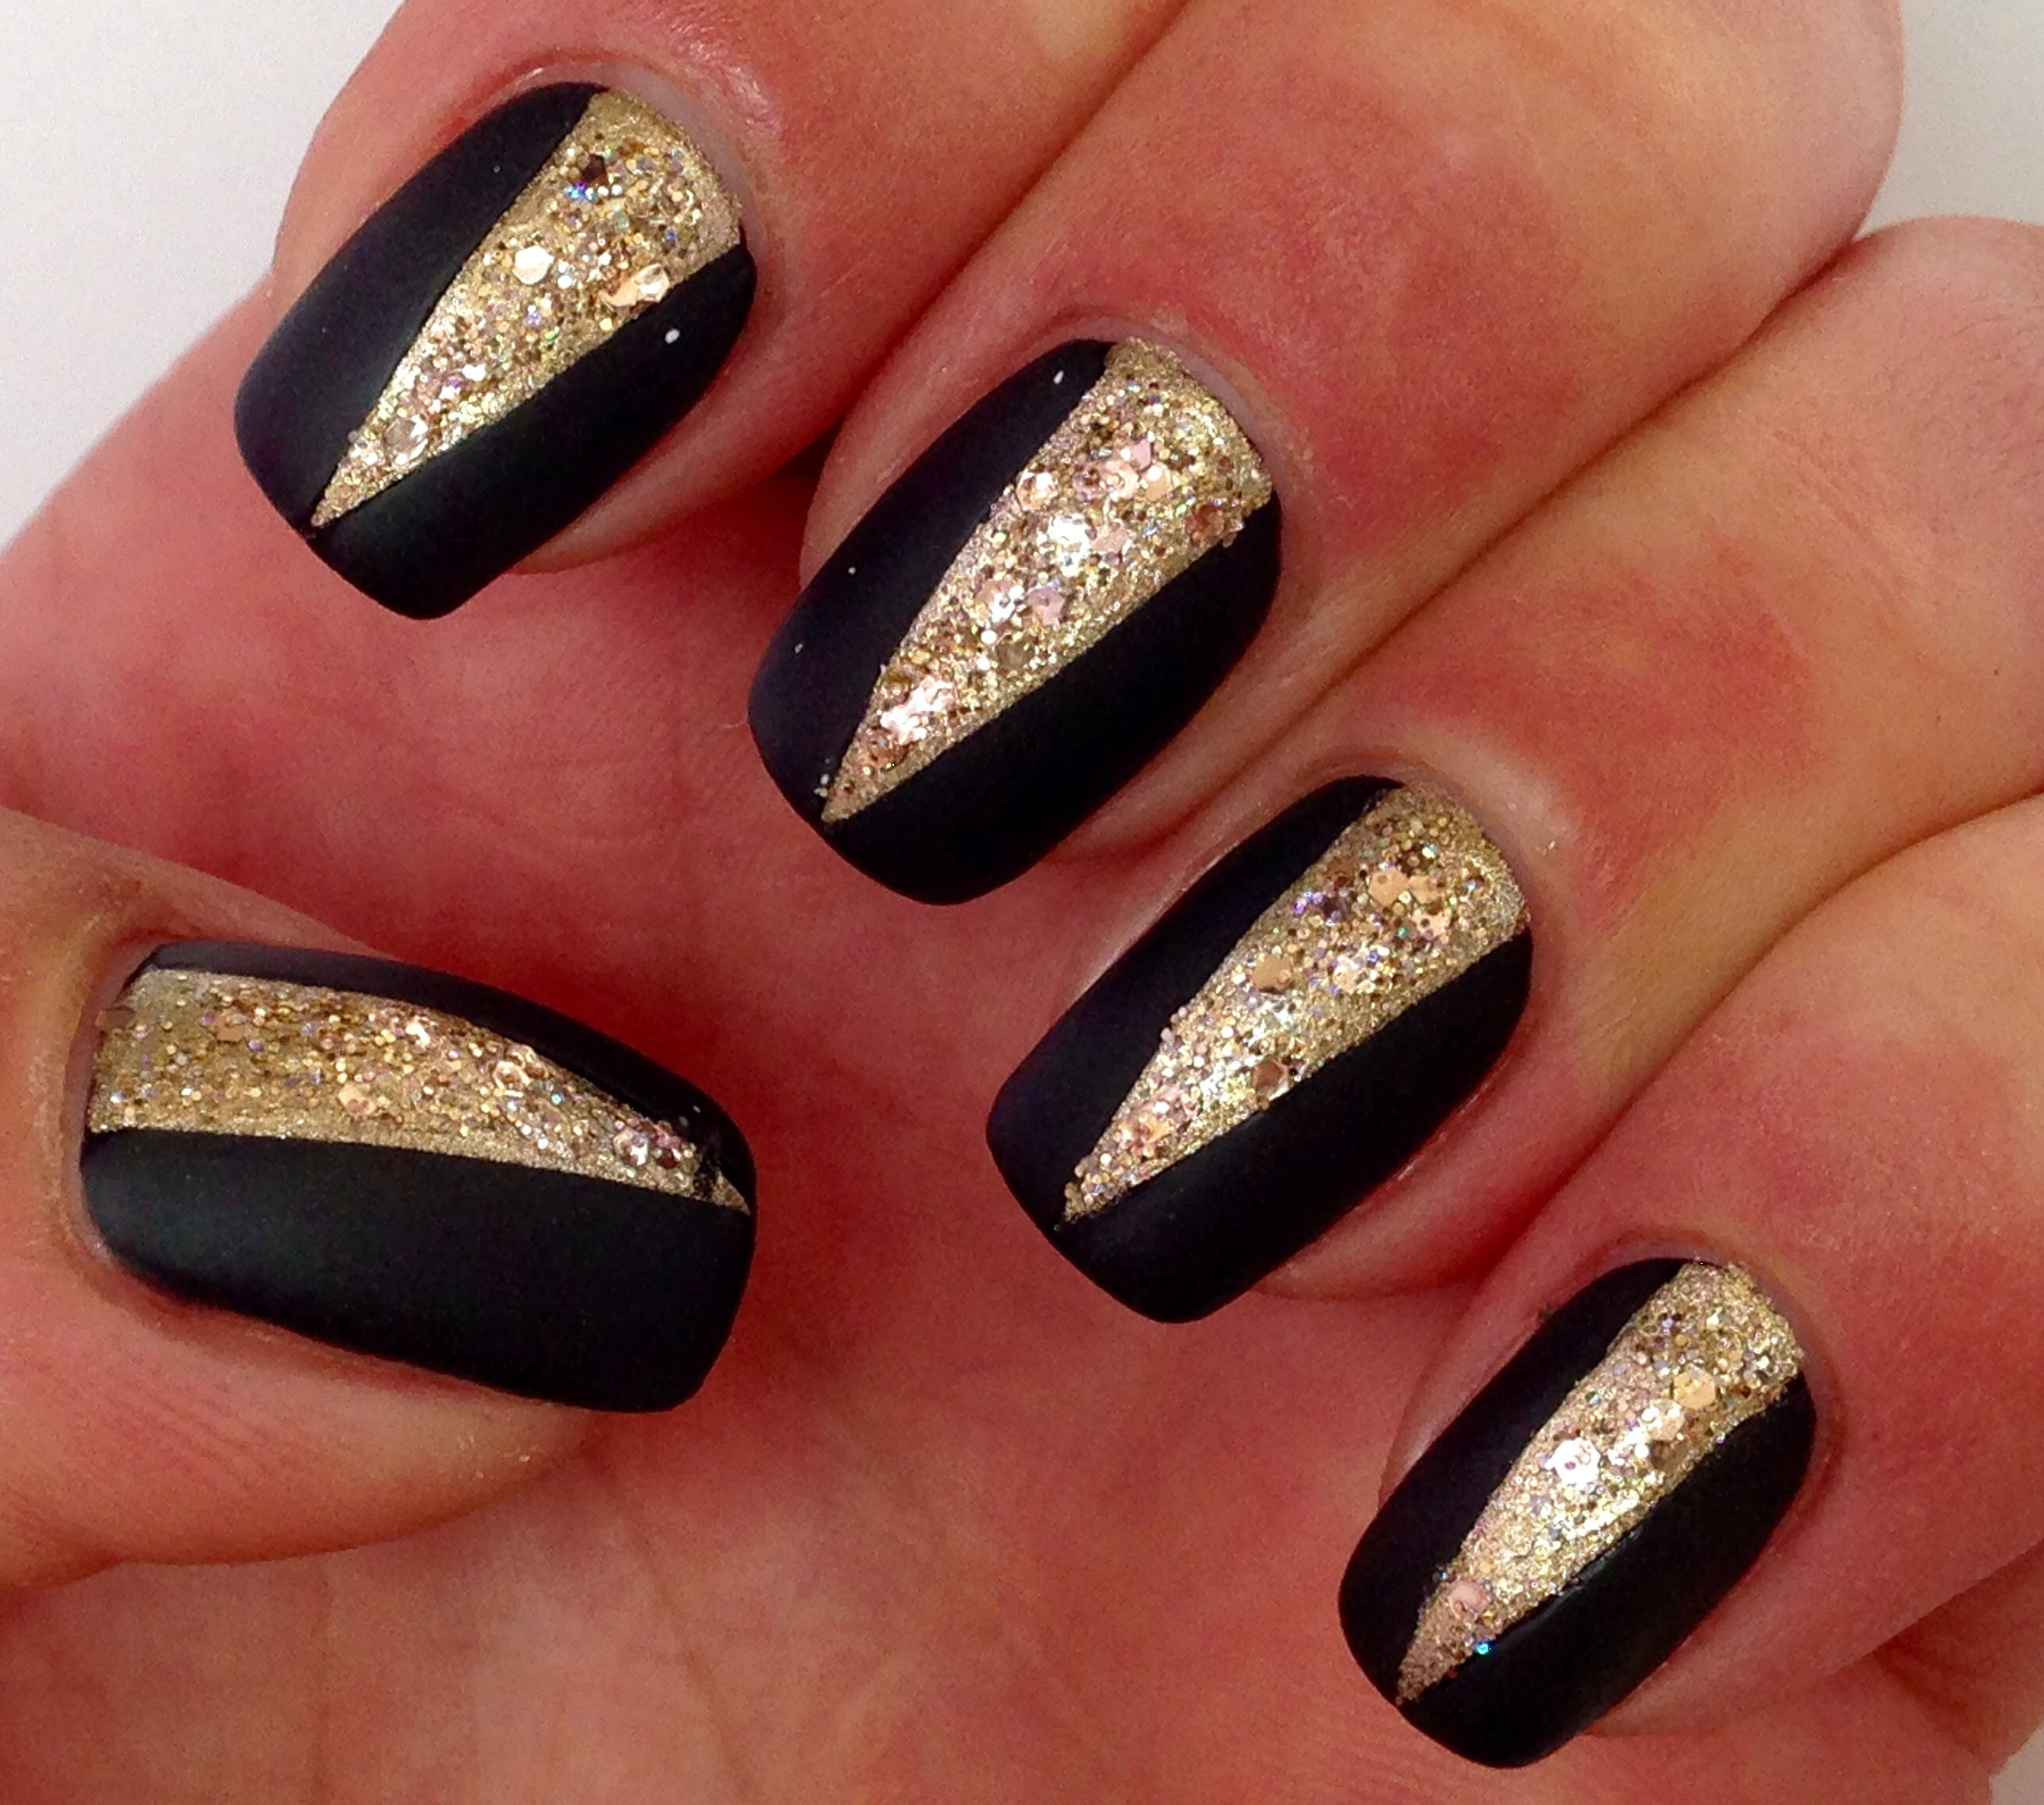 ATTRACTIVE SOPHISTICATED BLACK AND GOLD NAILS-NAIL STYLES 2